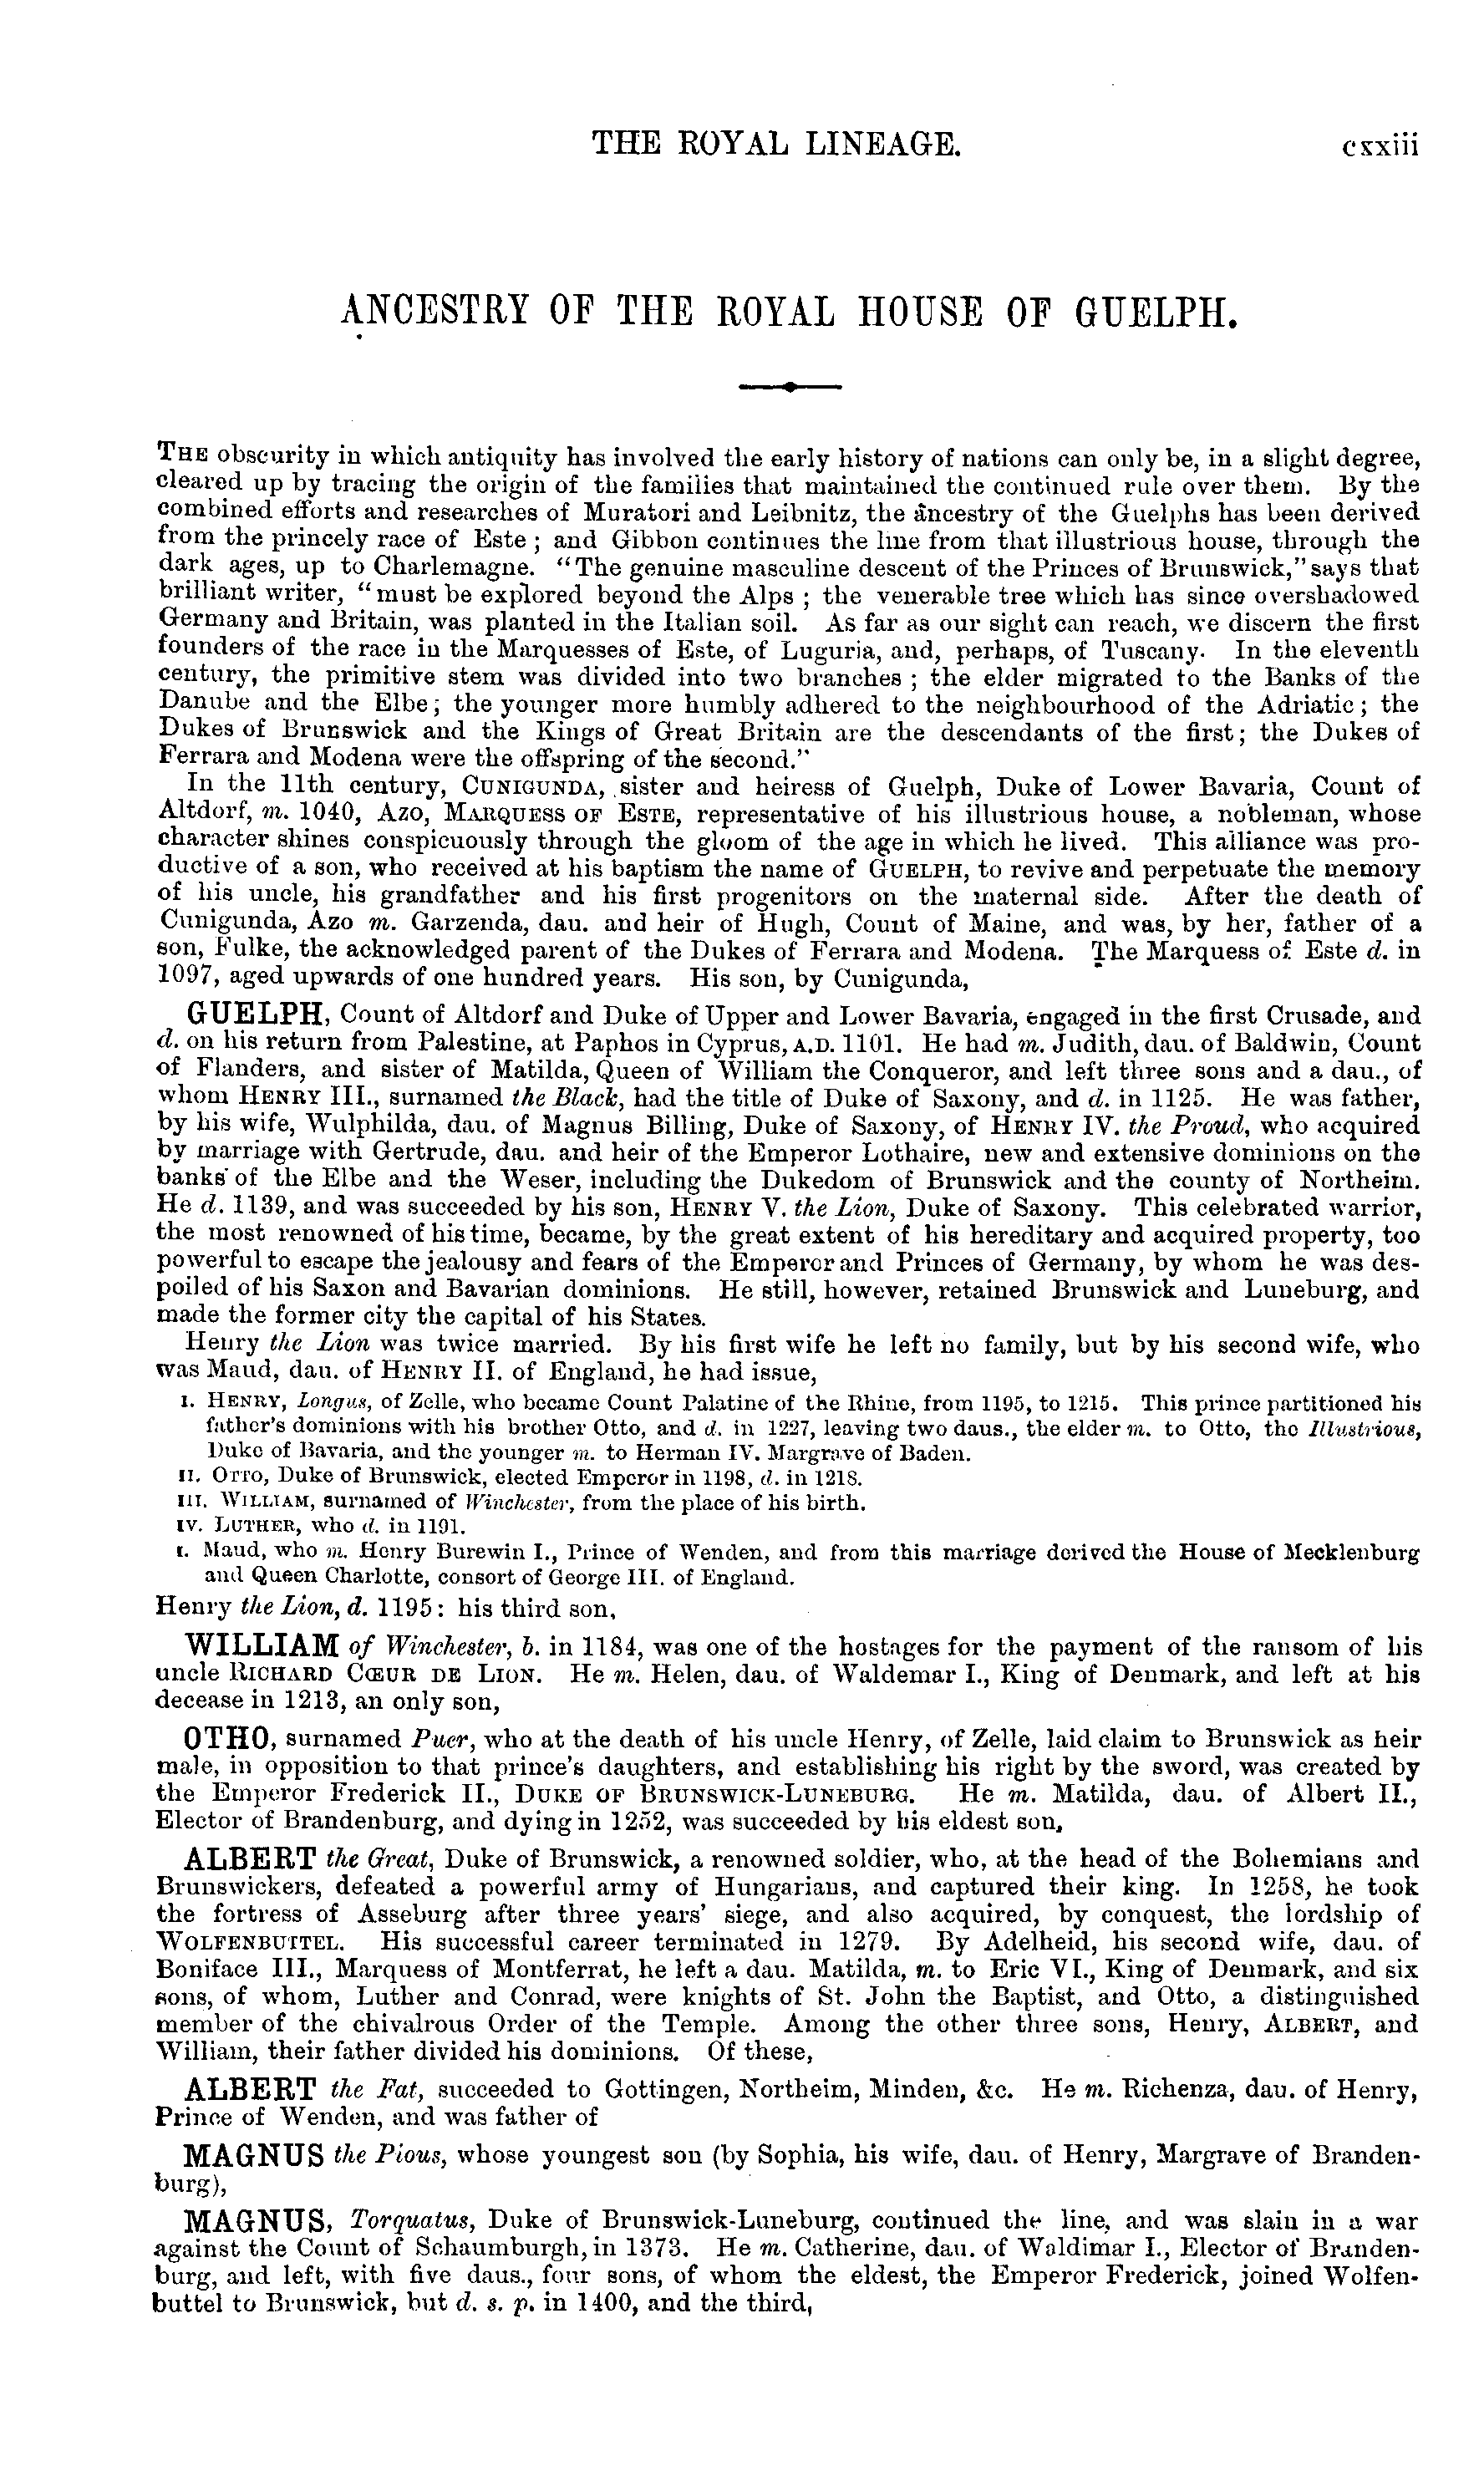 Burke's Peerage, Baronetage, and Knightage 1899 page cxxiii - click to open larger version in a new window